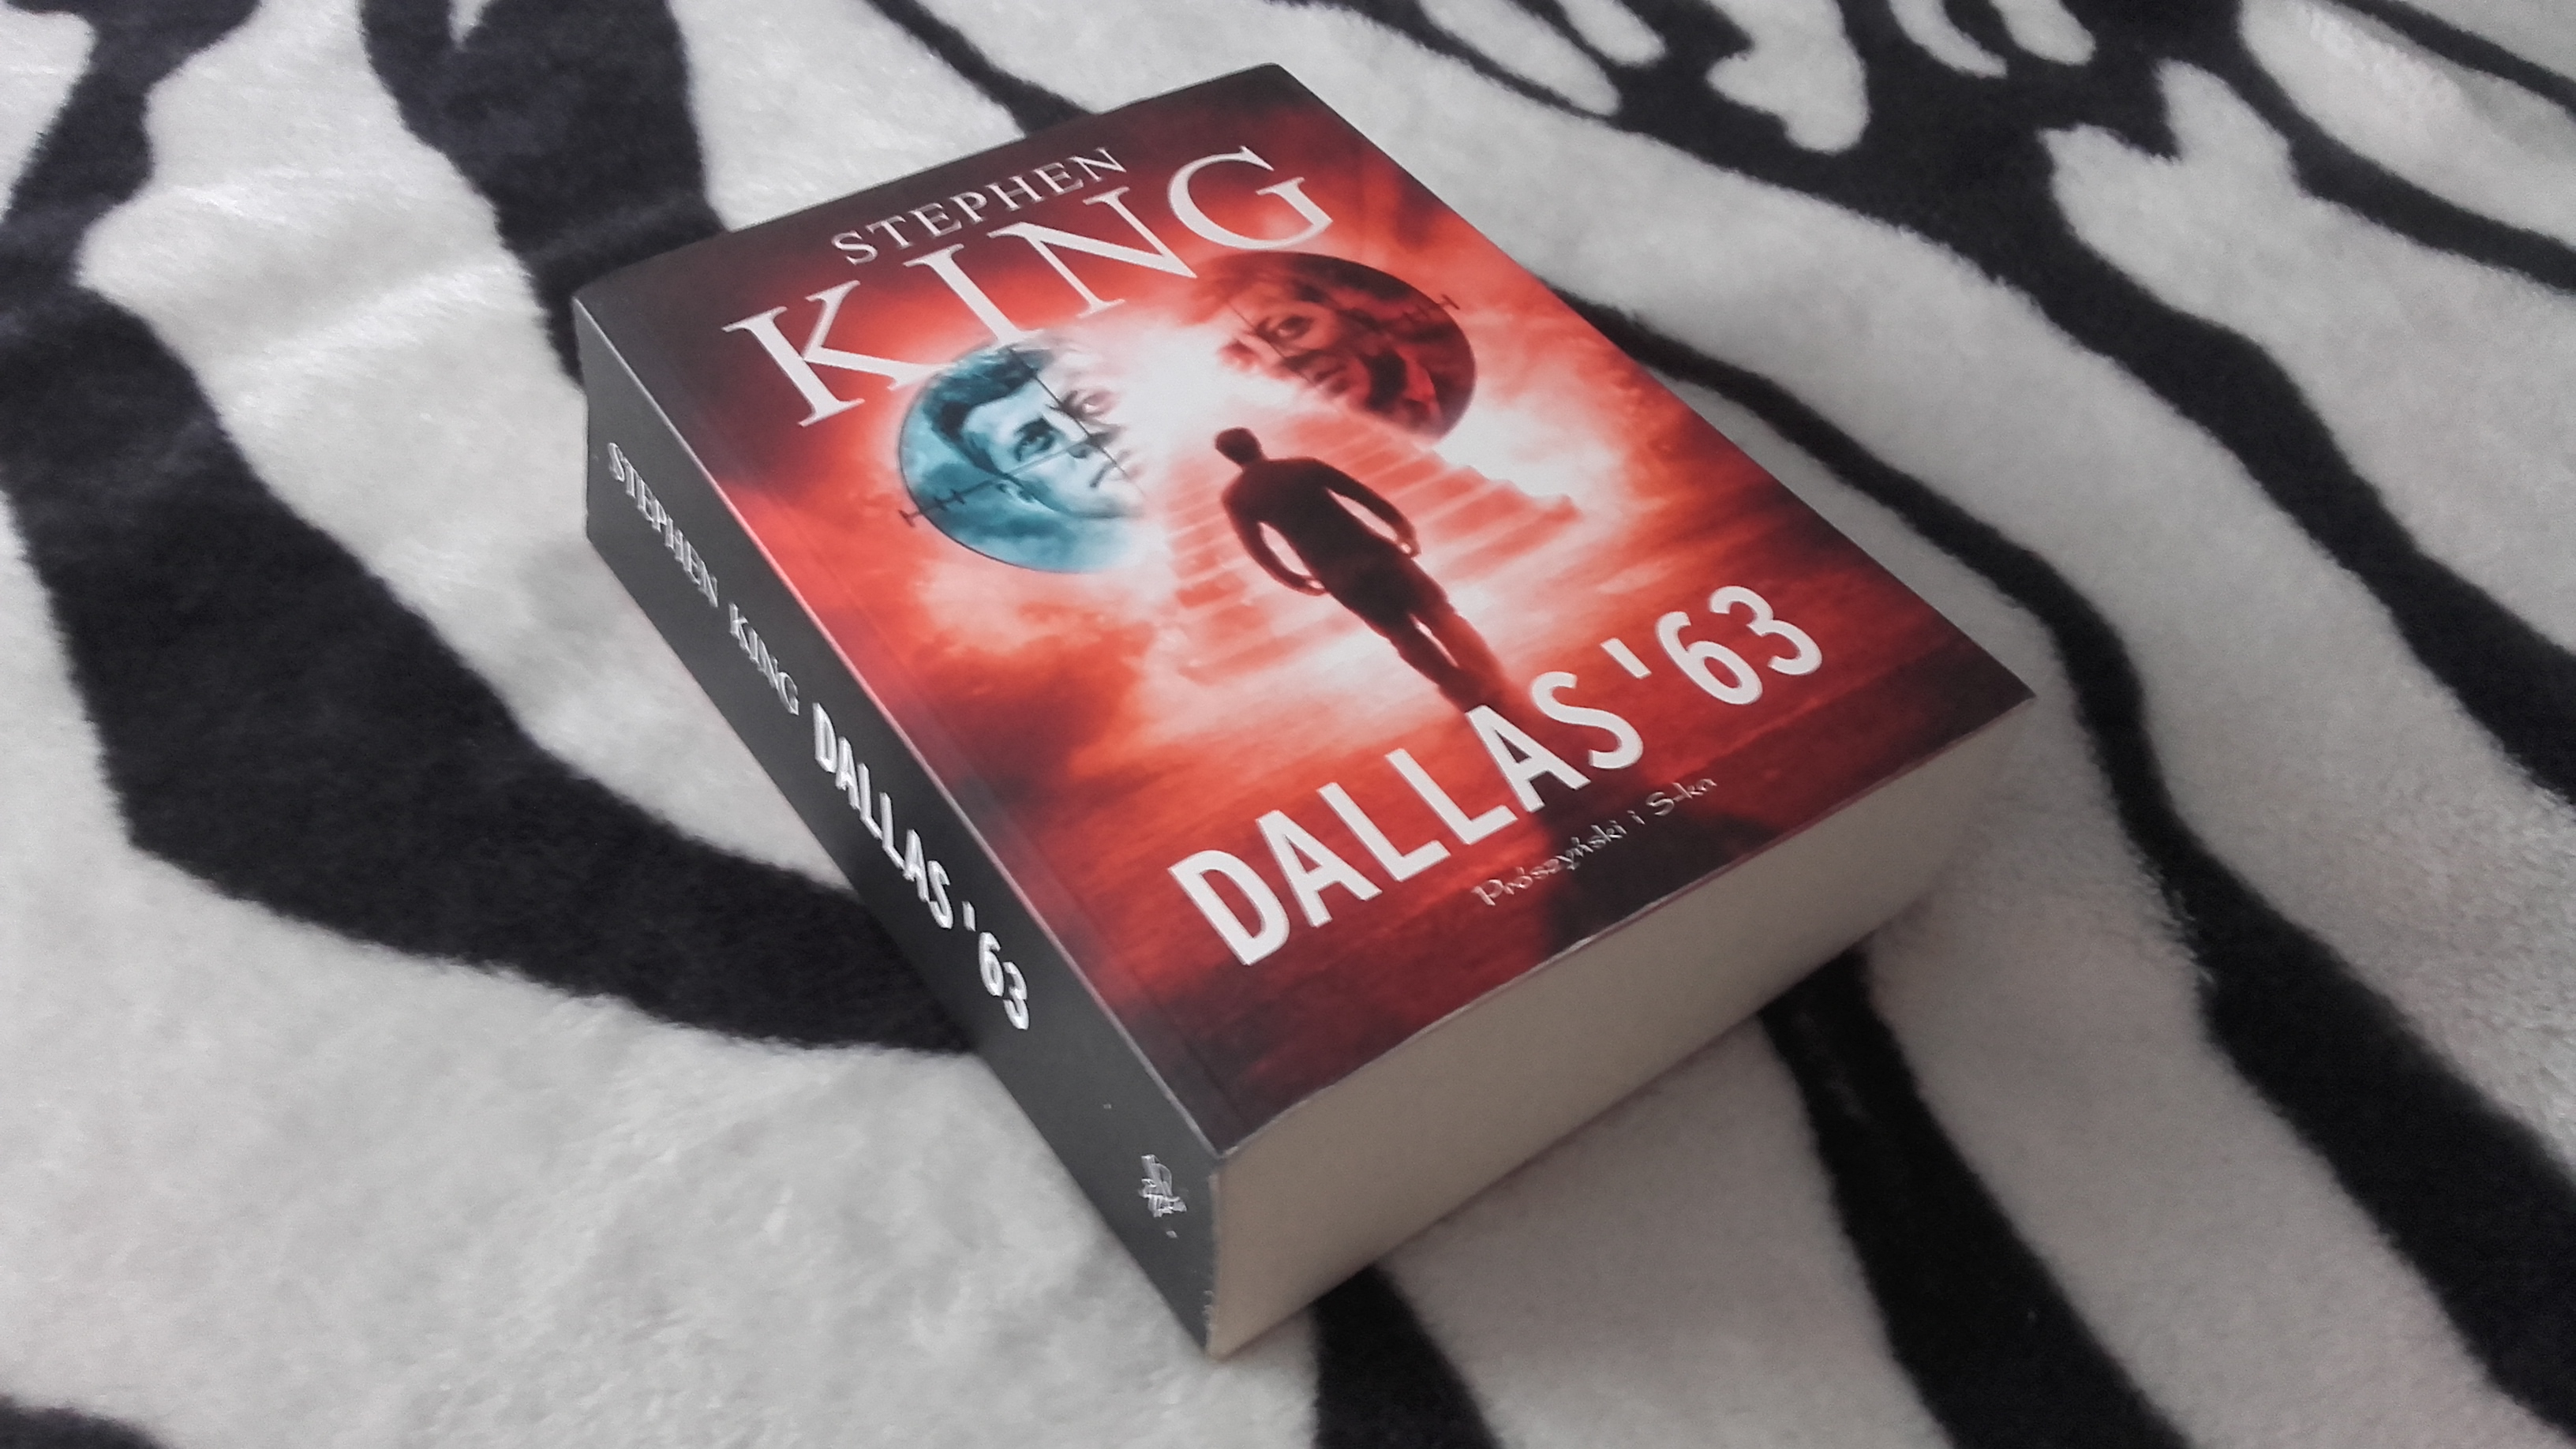 Dallas'63 – Stephen King